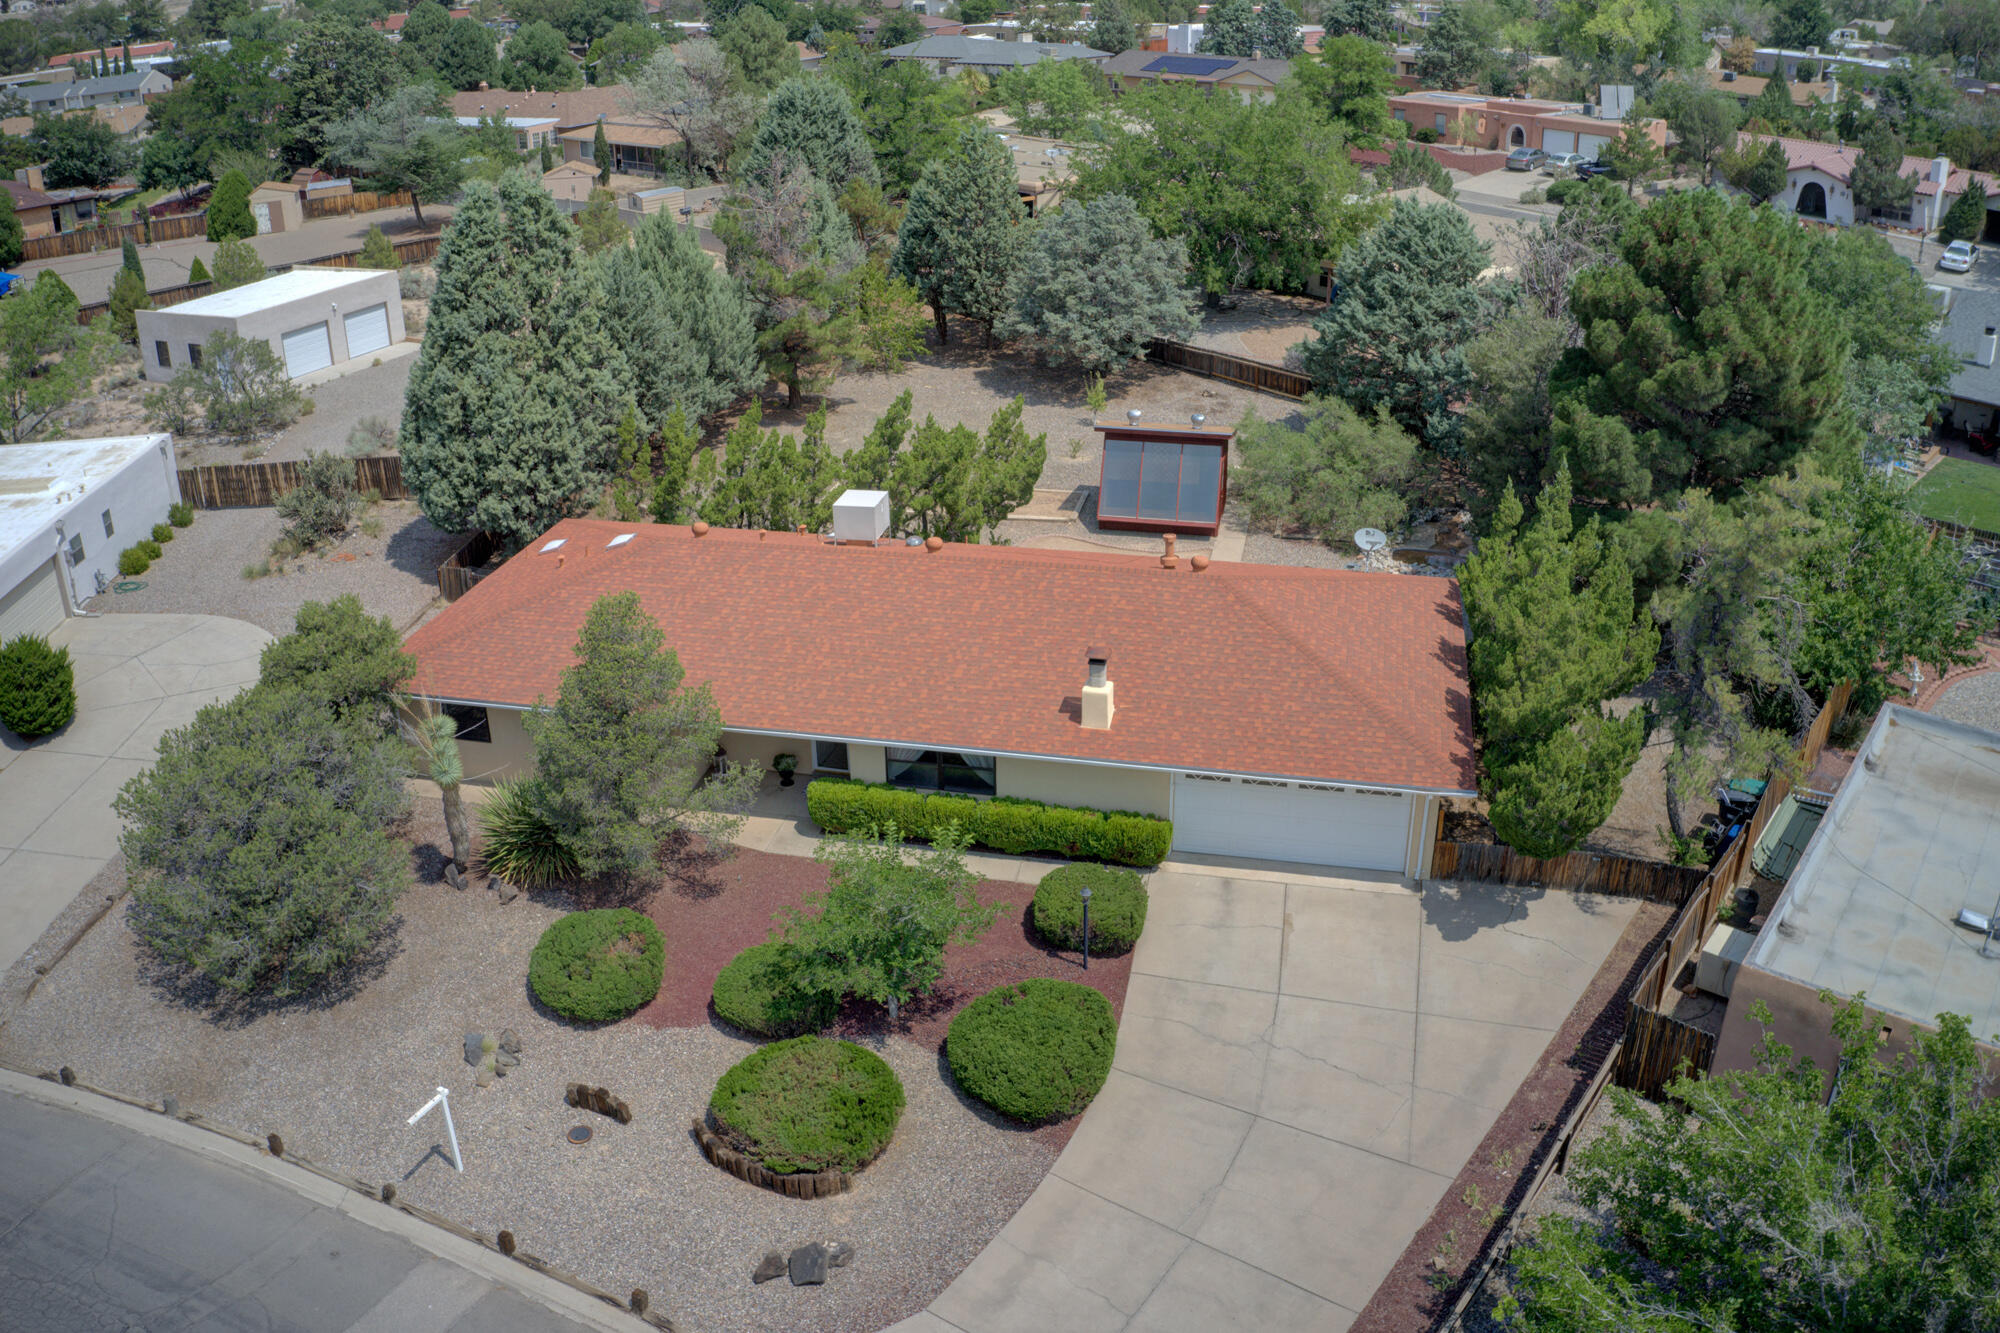 *****MULTIPLE OFFERS****** INCOMING OFFERS MUST BE SUBMITTED BY 5pm 7/25/21. Immaculate home that sits on a very private and serene 1/2 acre lot with a custom 12 x 10 green house and plenty of room for a garden. Relax and enjoy the outdoors while sitting next to the pond and firepit. Newer roof and skylights, Re-stuccoed 2 years ago, Pellet stove for cold wintery nights. Beautiful oak flooring, new carpet, updated kitchen and Baths.  Conveniently located at 528 and Southern. Floor Plan has been ordered to verify the square footage.